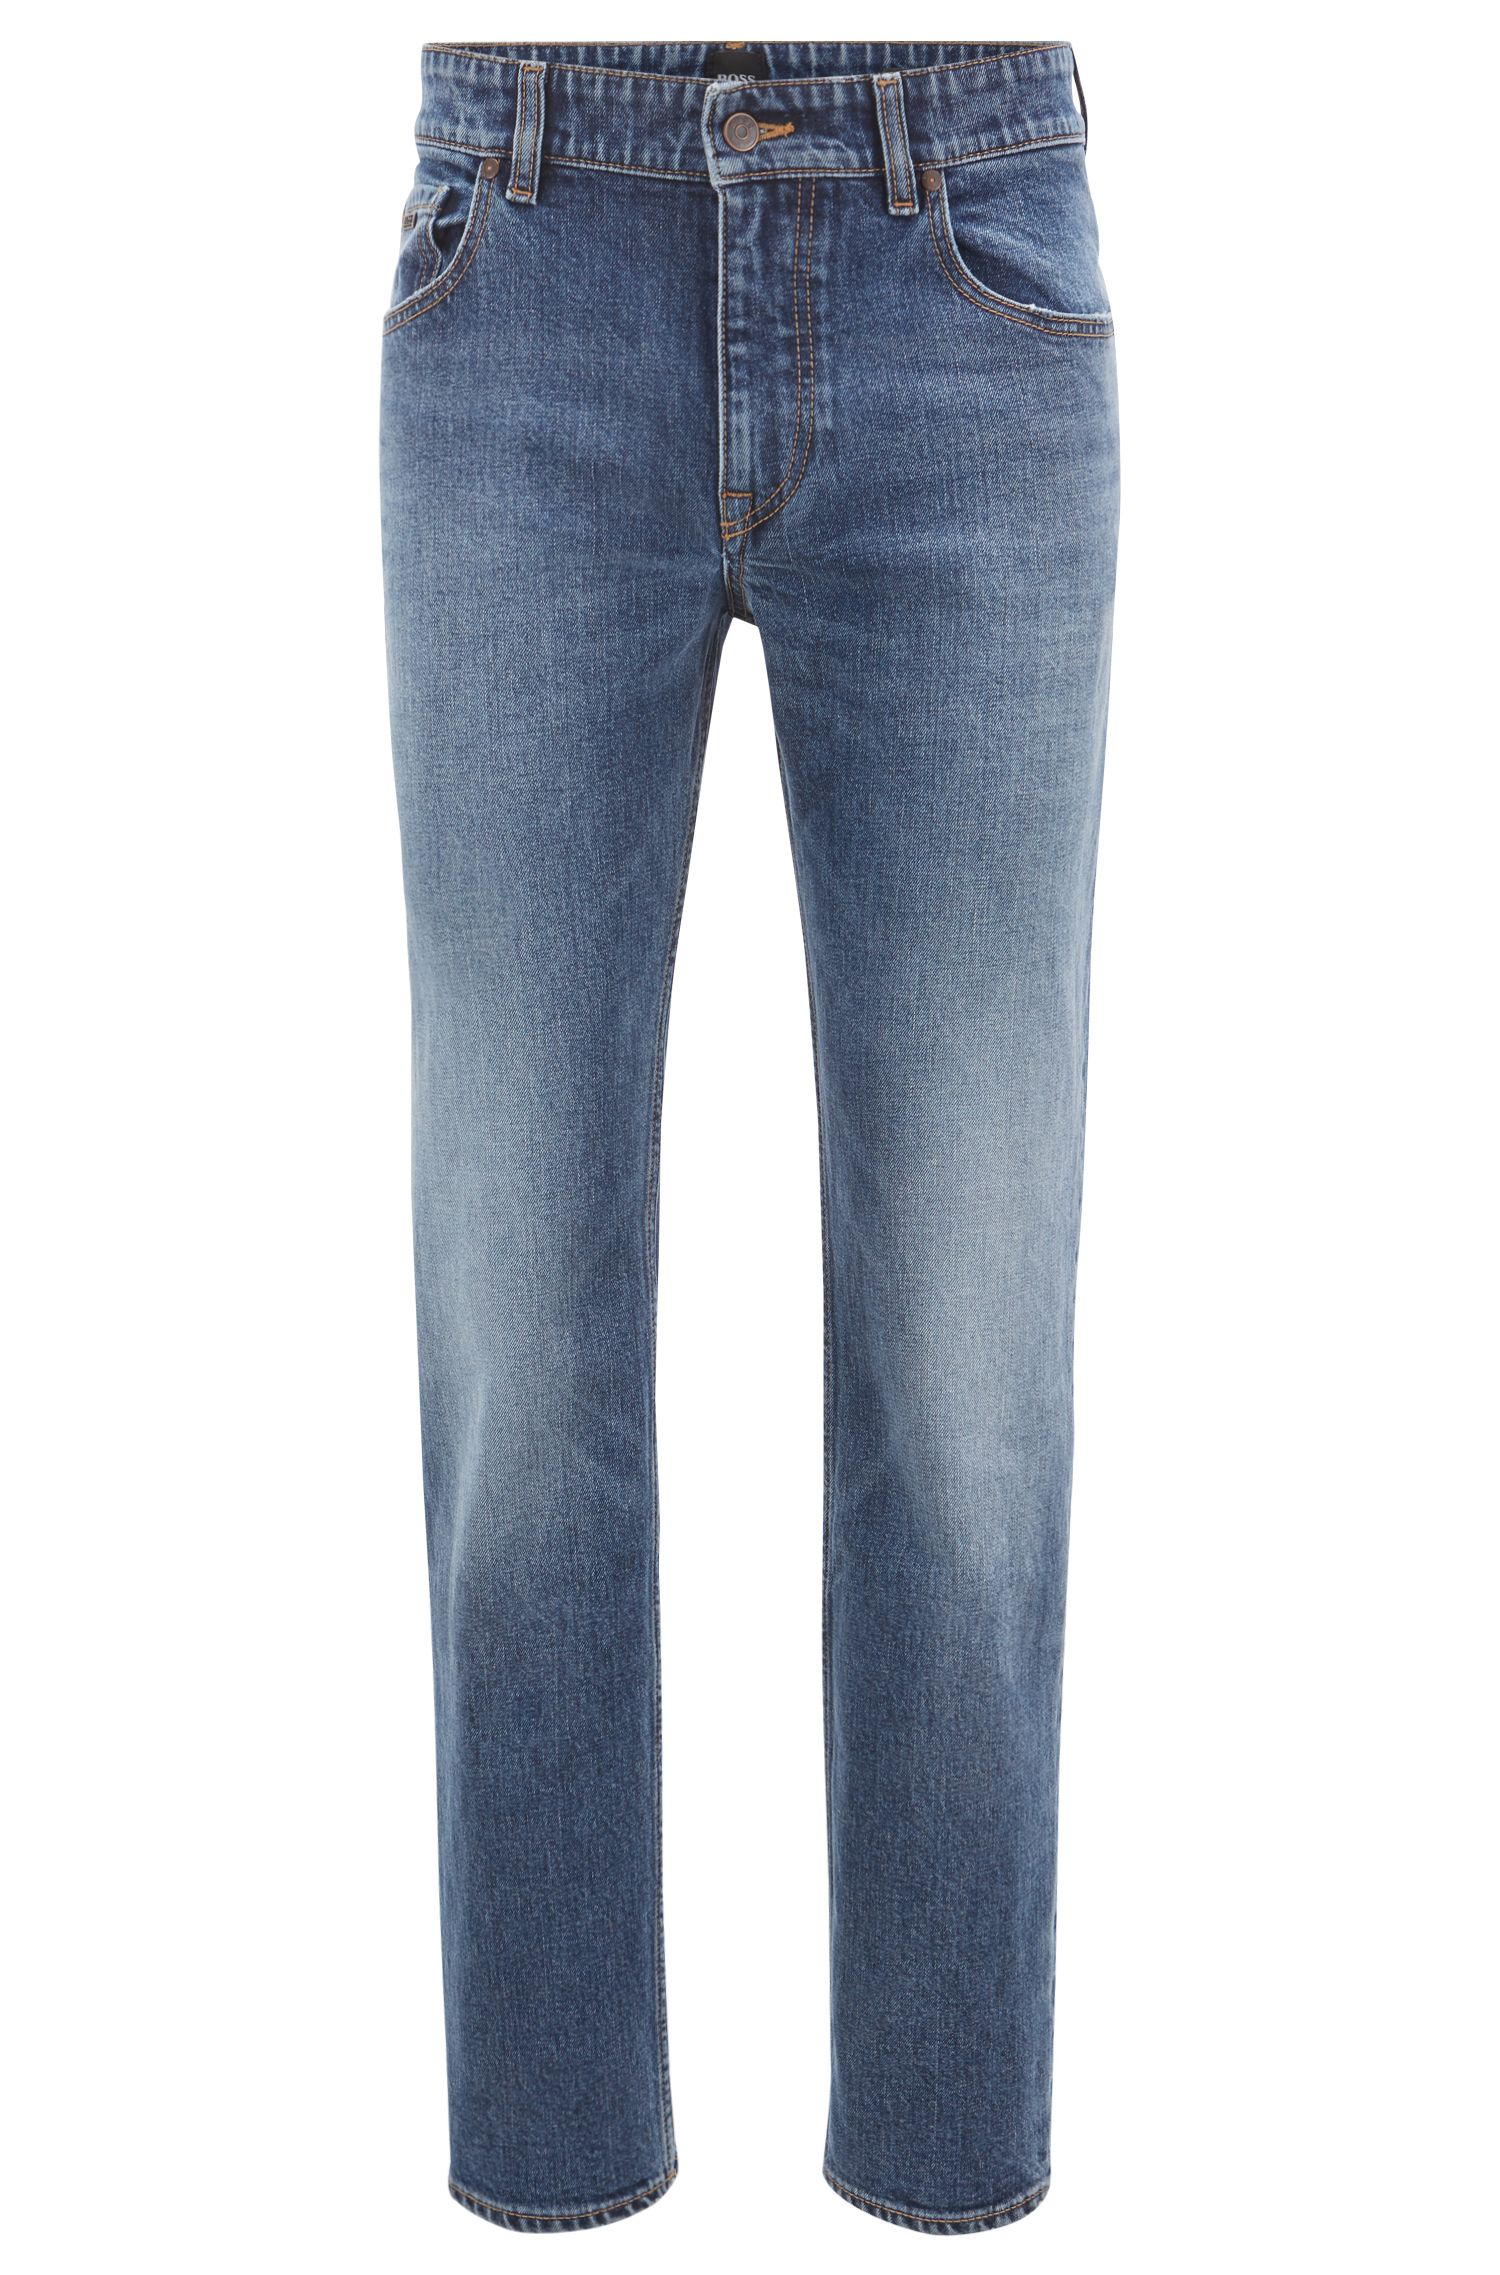 Jean Relaxed Fit en denim stretch flammé bleu moyen, Bleu